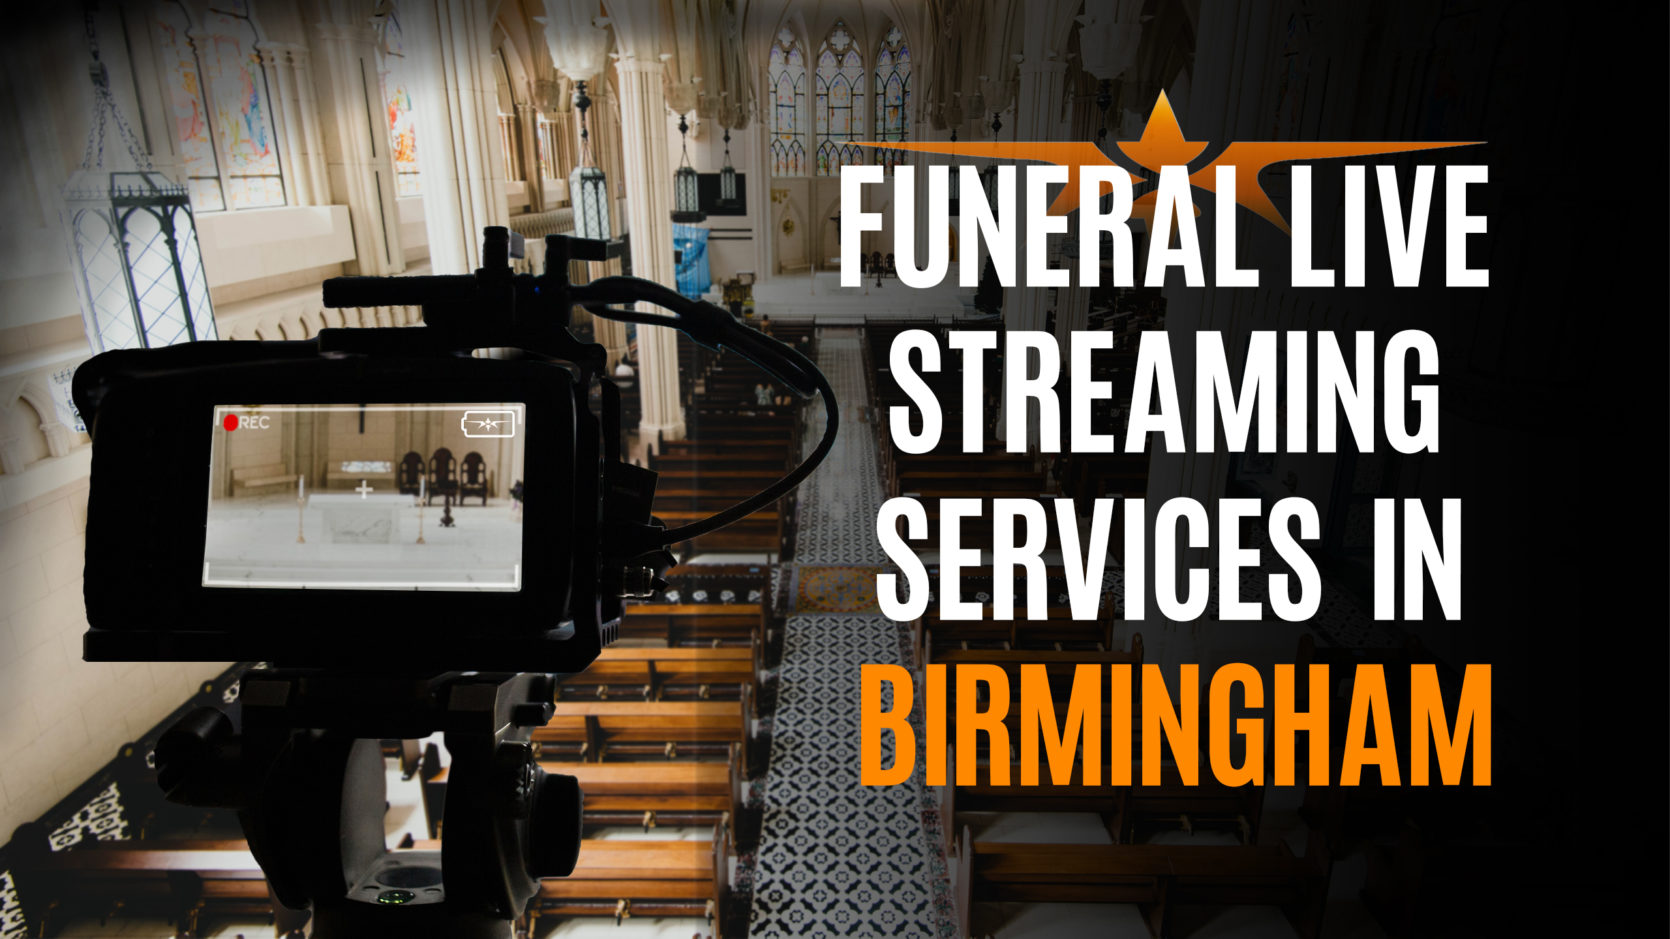 Funeral Live Streaming Services in Birmingham